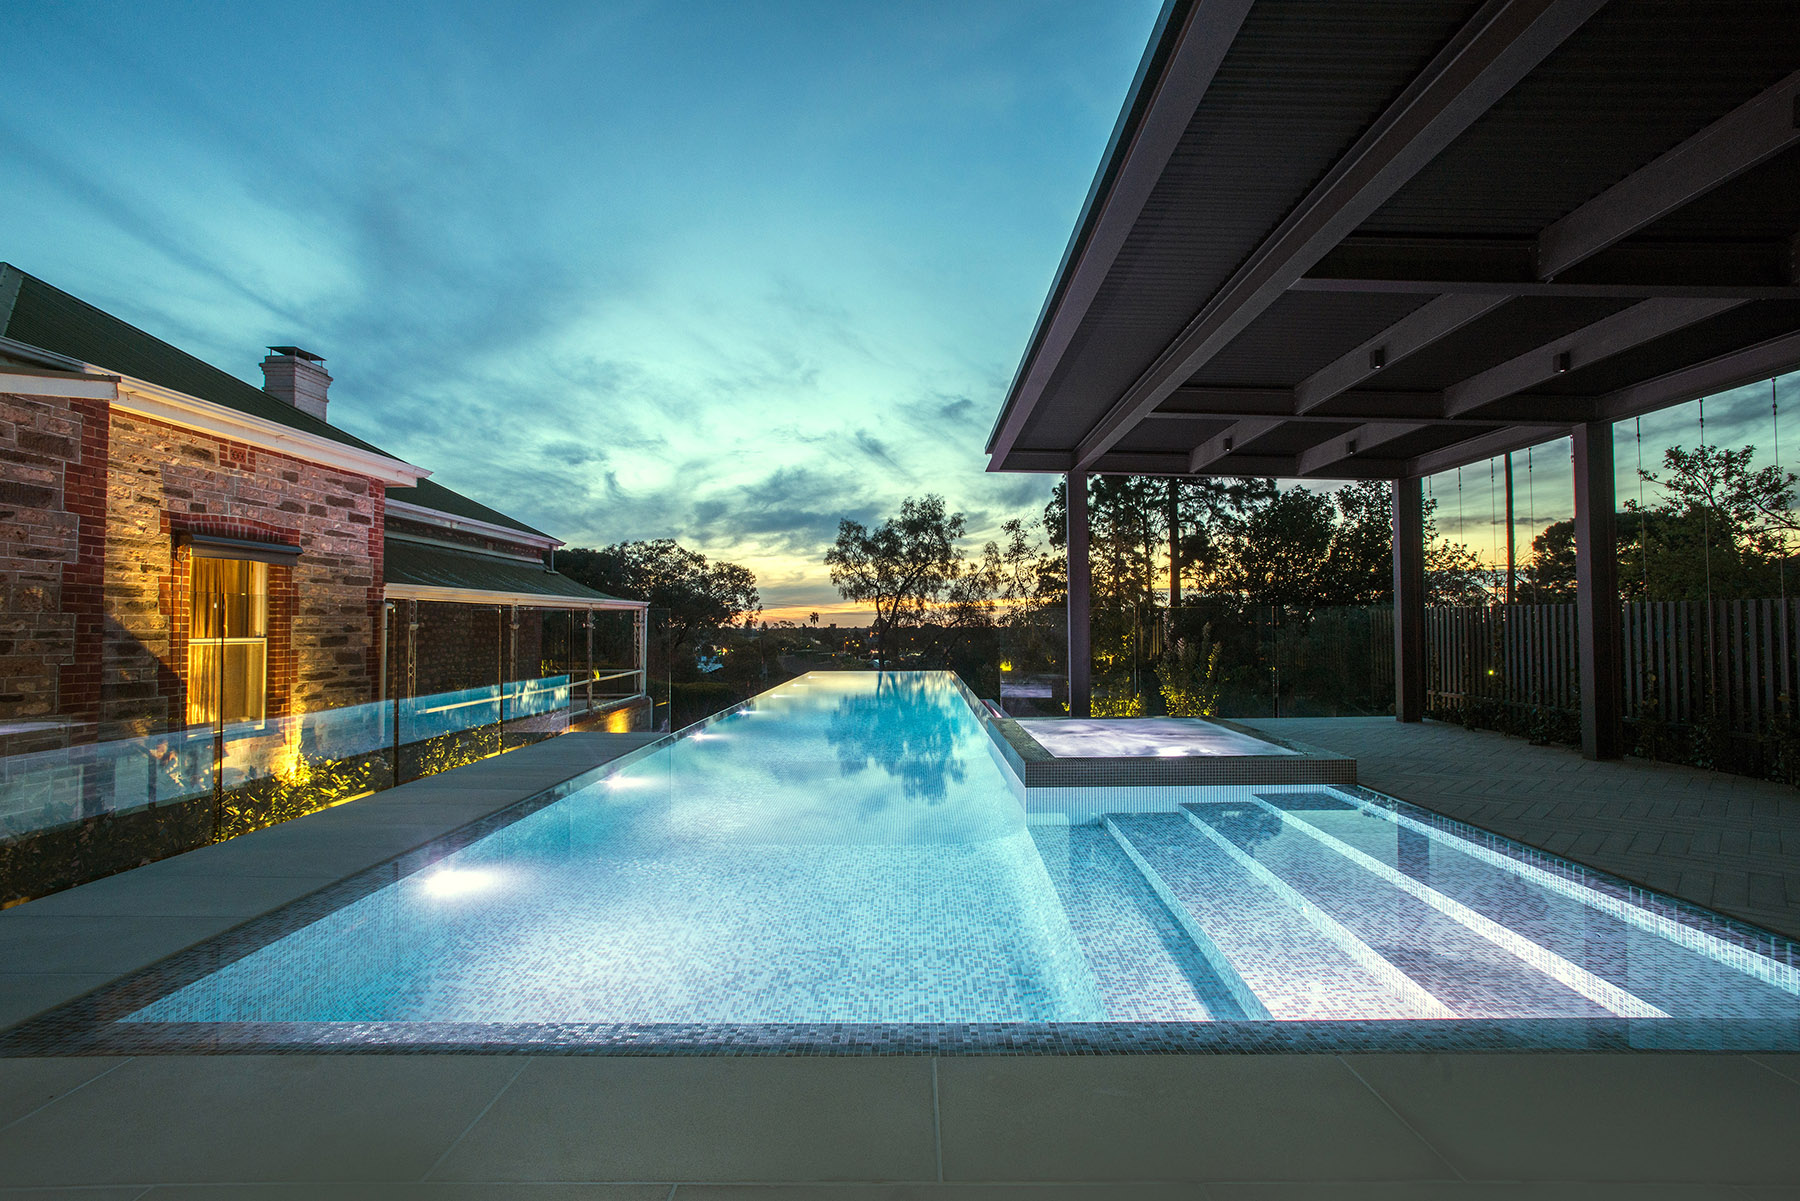 Bisazza mosaic pool and spa by Laguna Pools